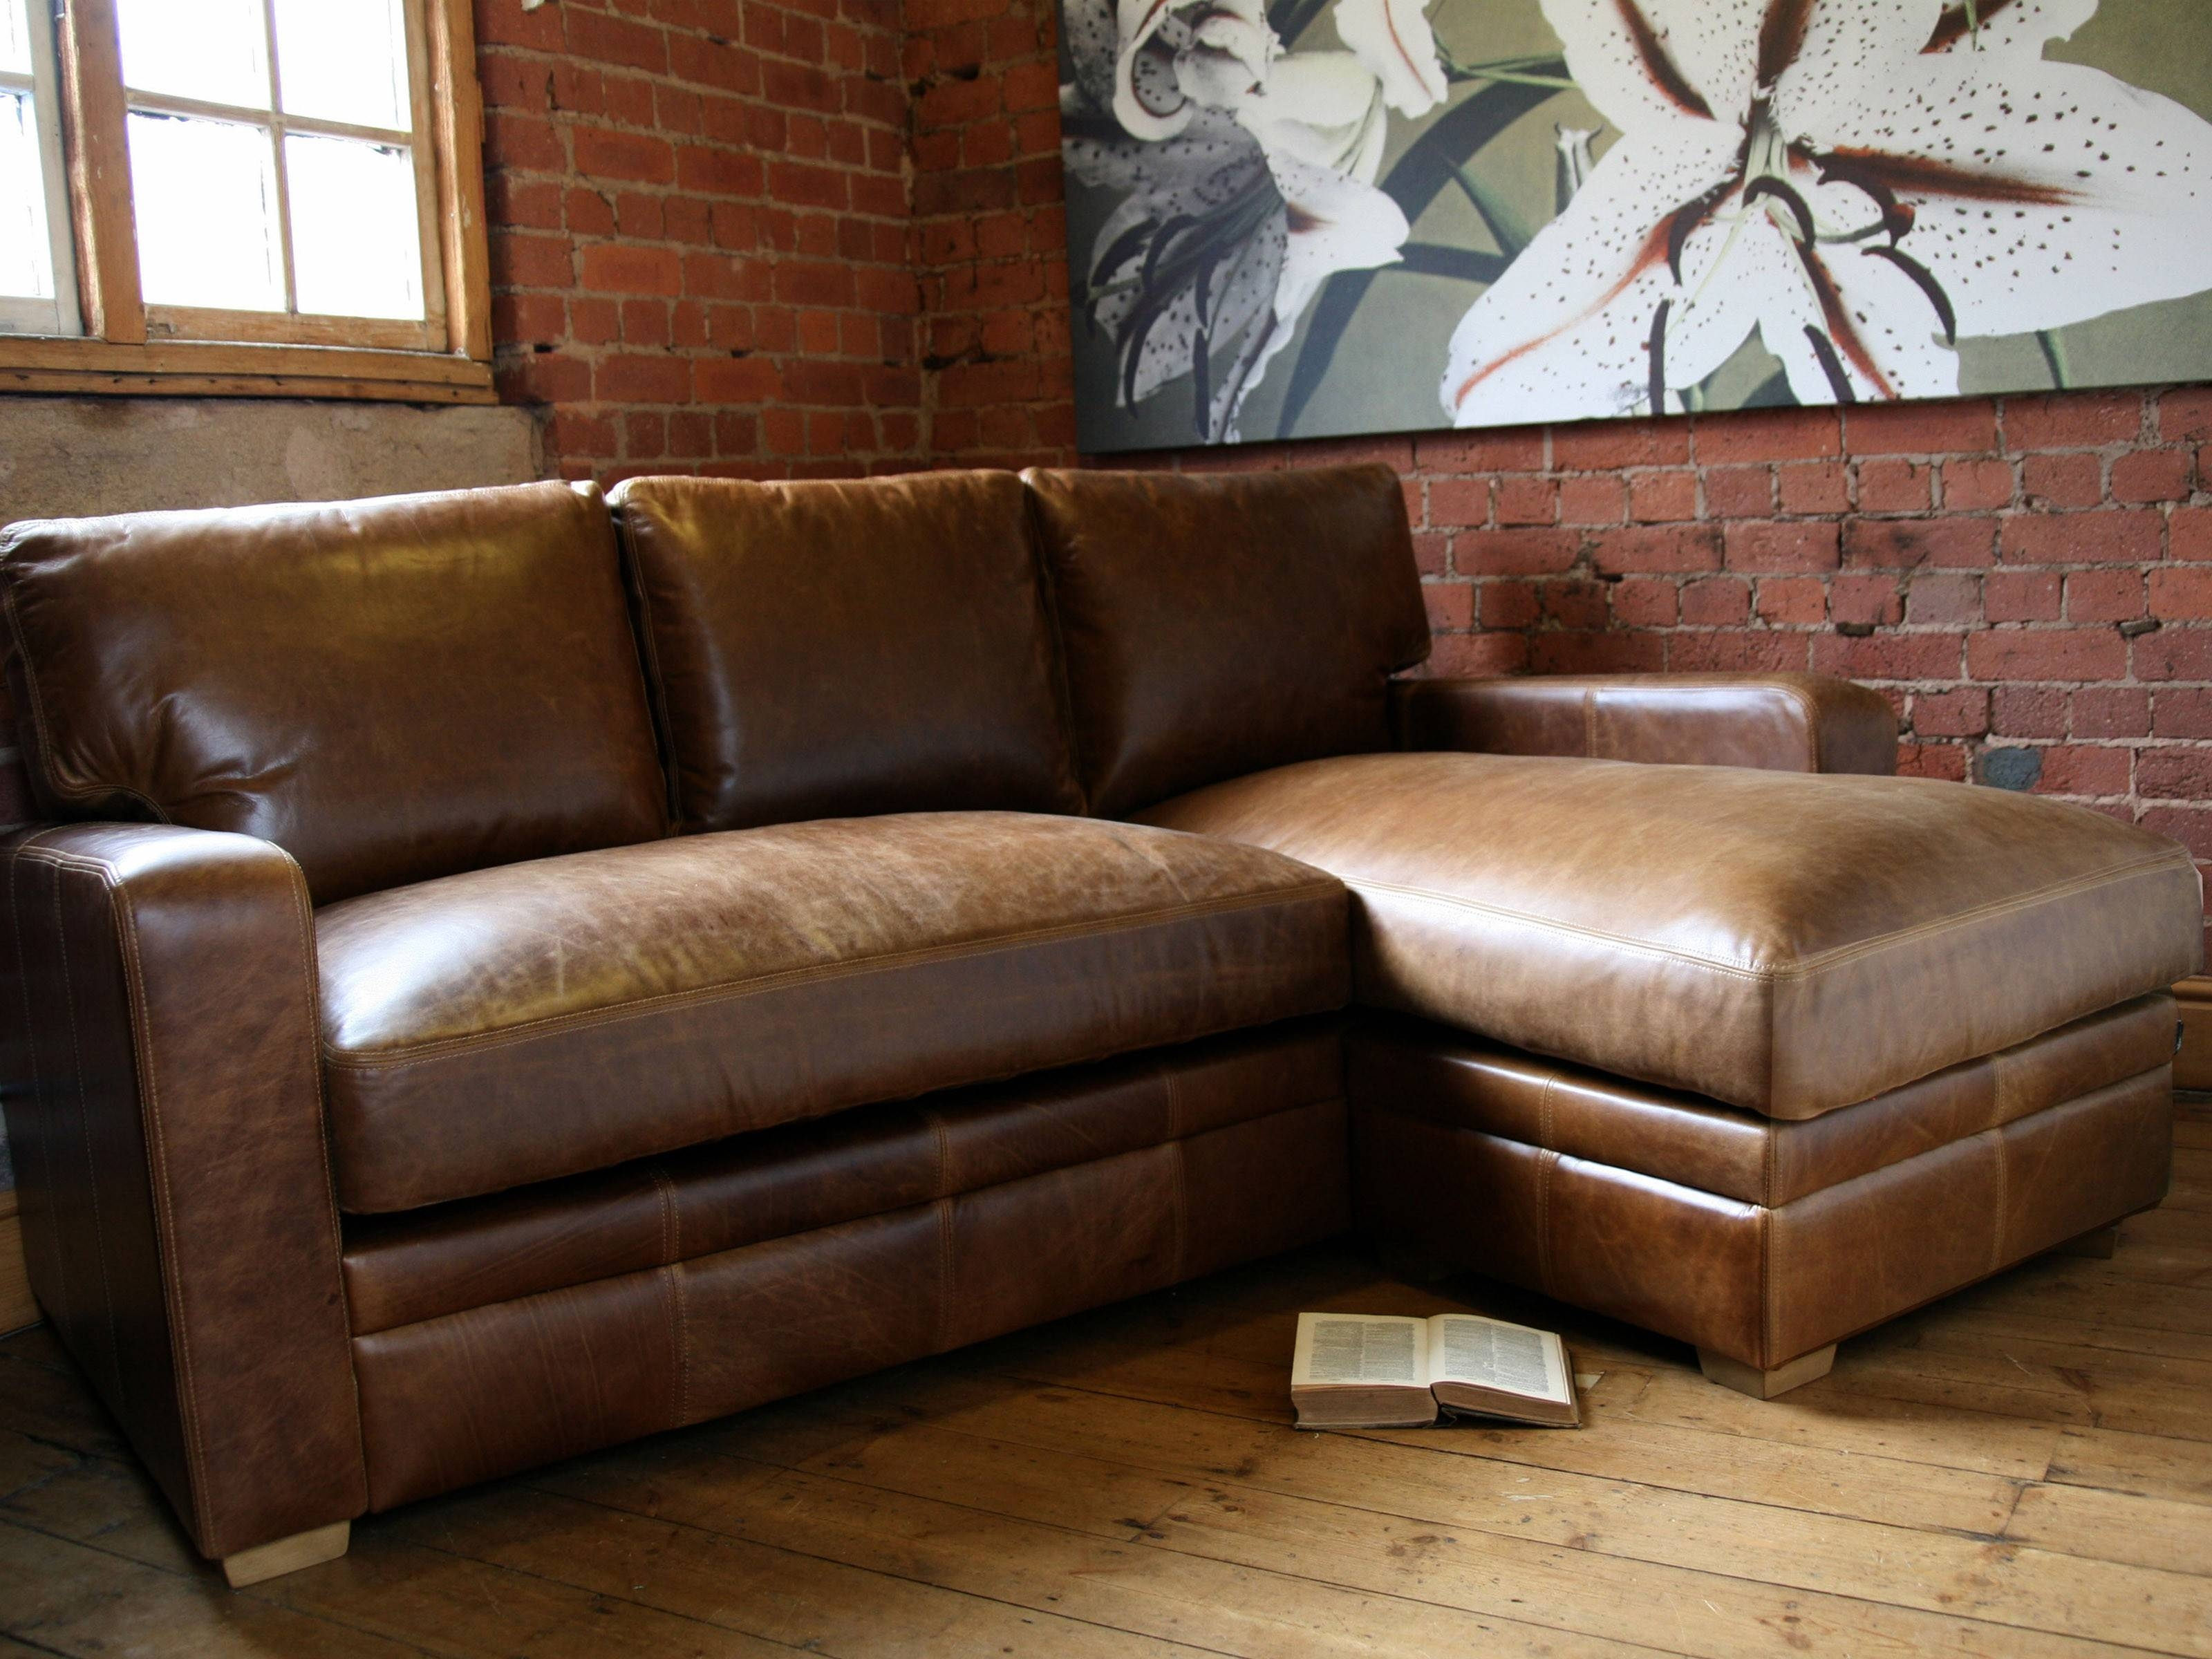 Bedroom: Comfortable Costco Leather Couches Make Cozy Living Room within Vintage Leather Sofa Beds (Image 5 of 30)